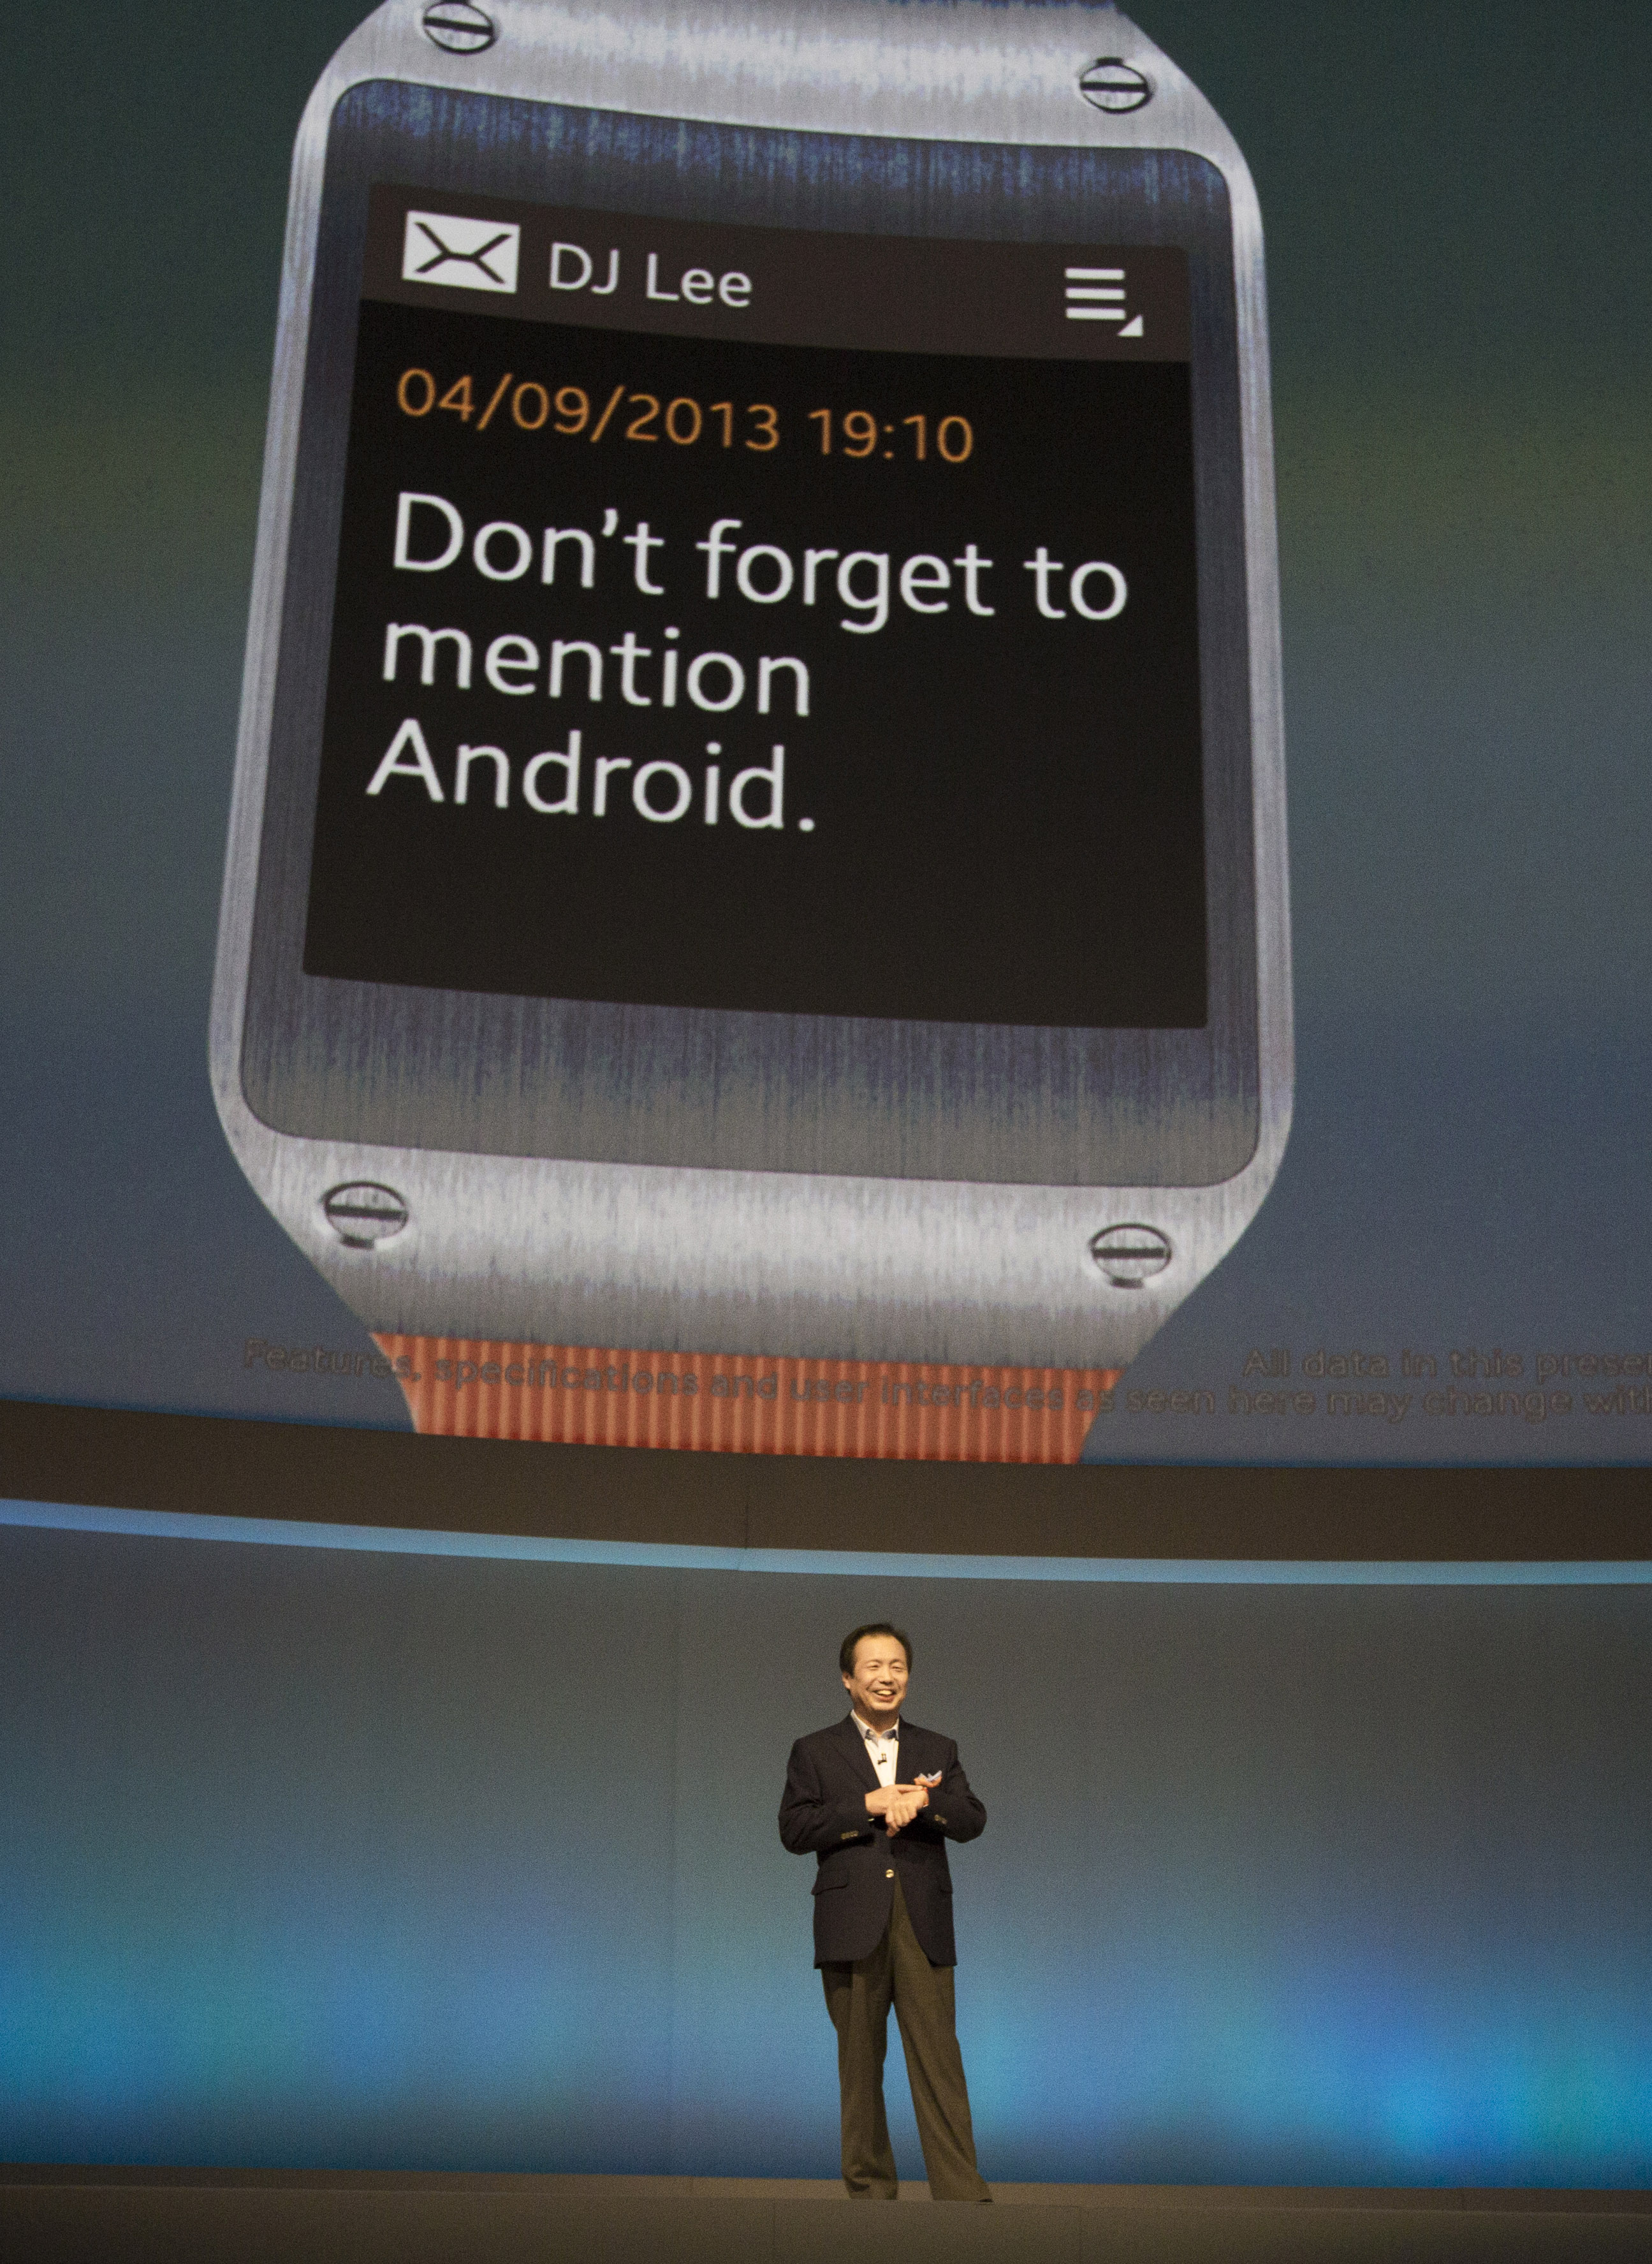 Samsung unveils new smartwatch that makes calls